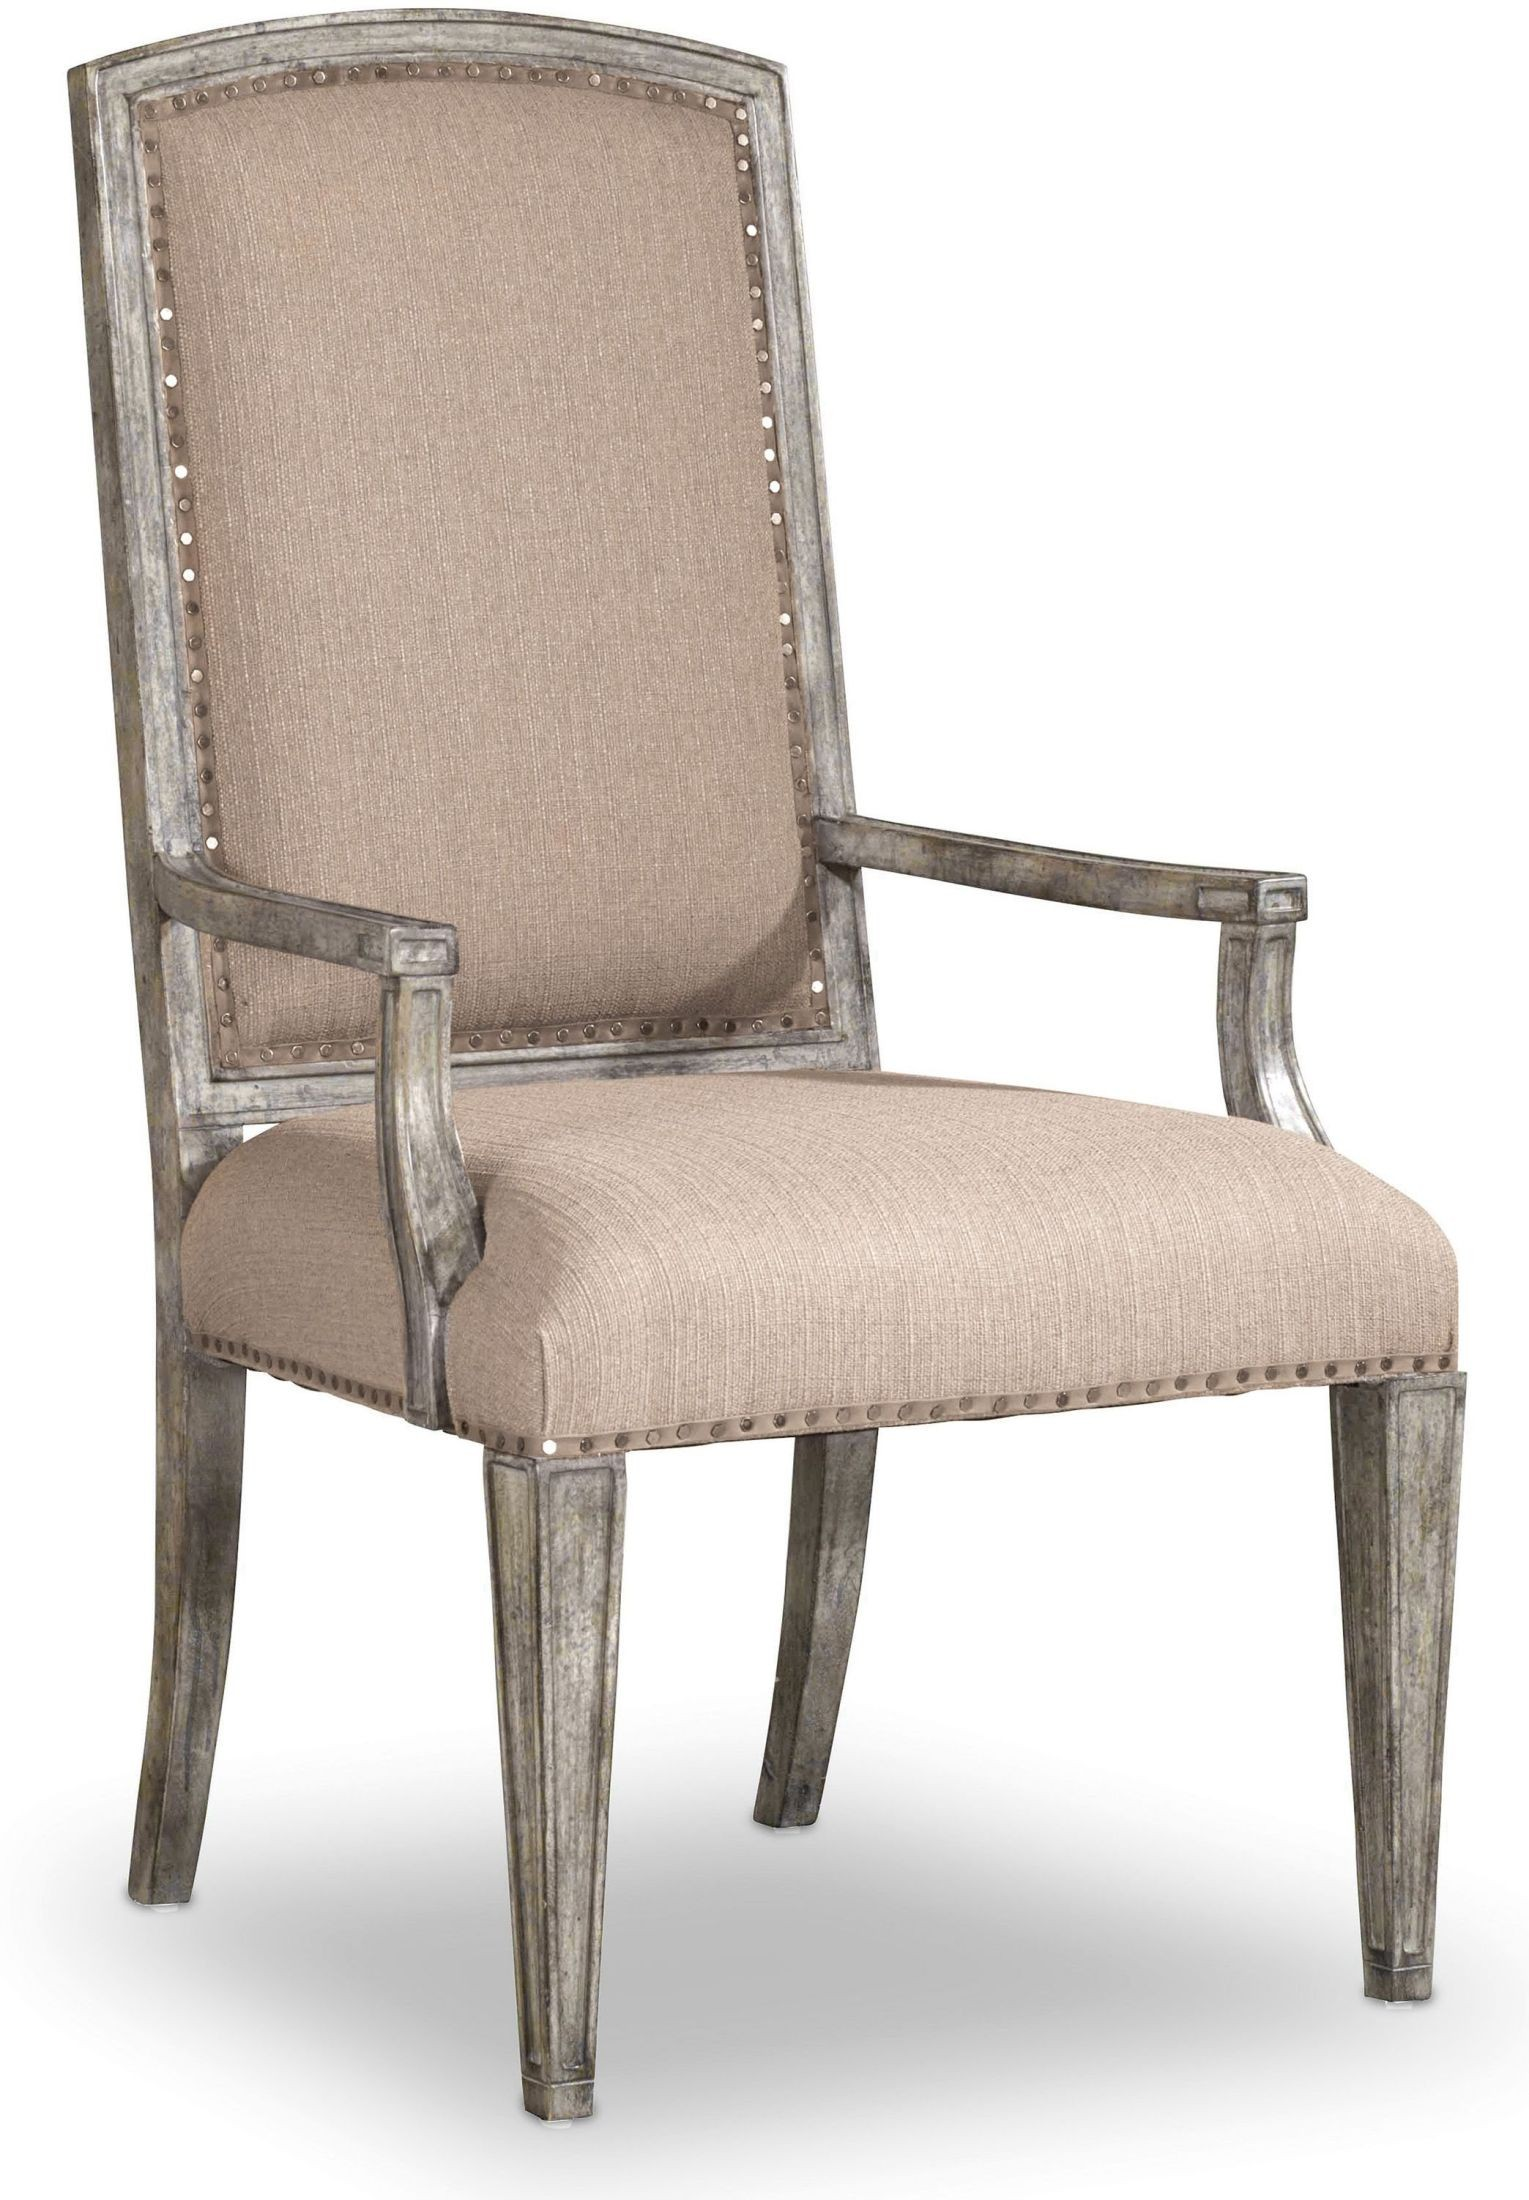 True Vintage Beige Upholstered Arm Chair Set Of 2 From